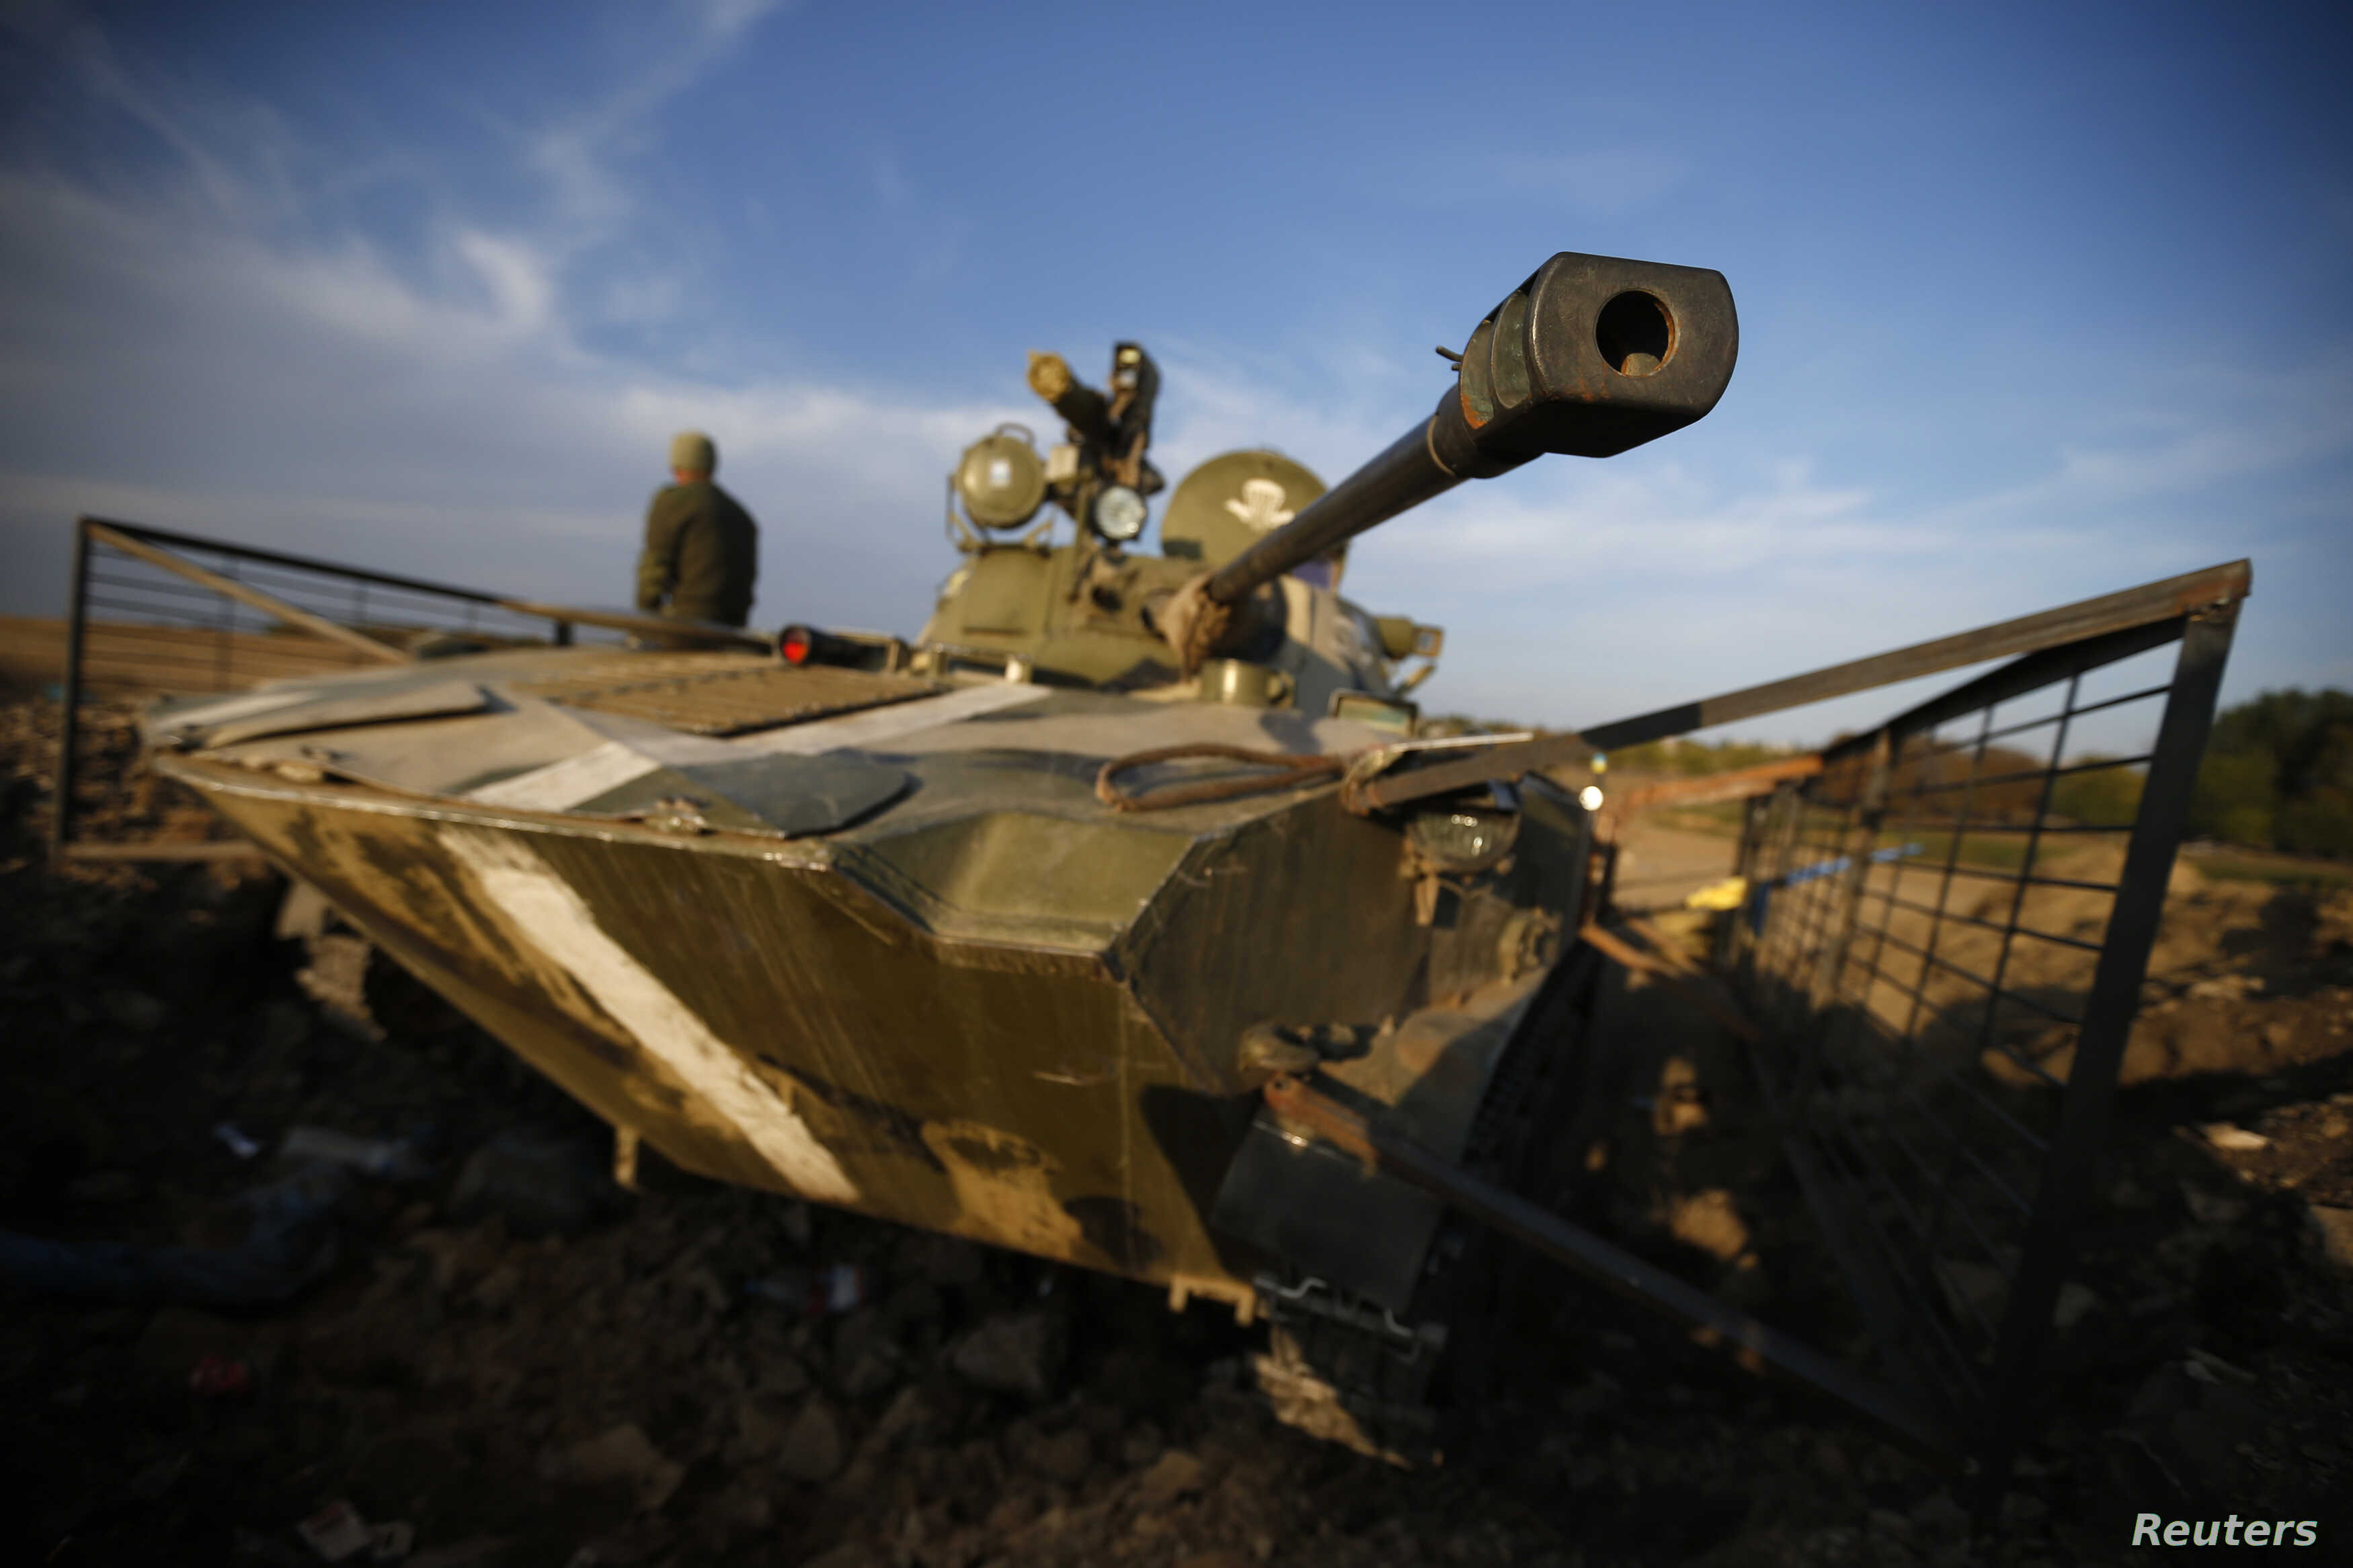 A Ukrainian soldier is pictured next to a tank near the village of Debaltseve in eastern Ukraine Sept. 21, 2014.